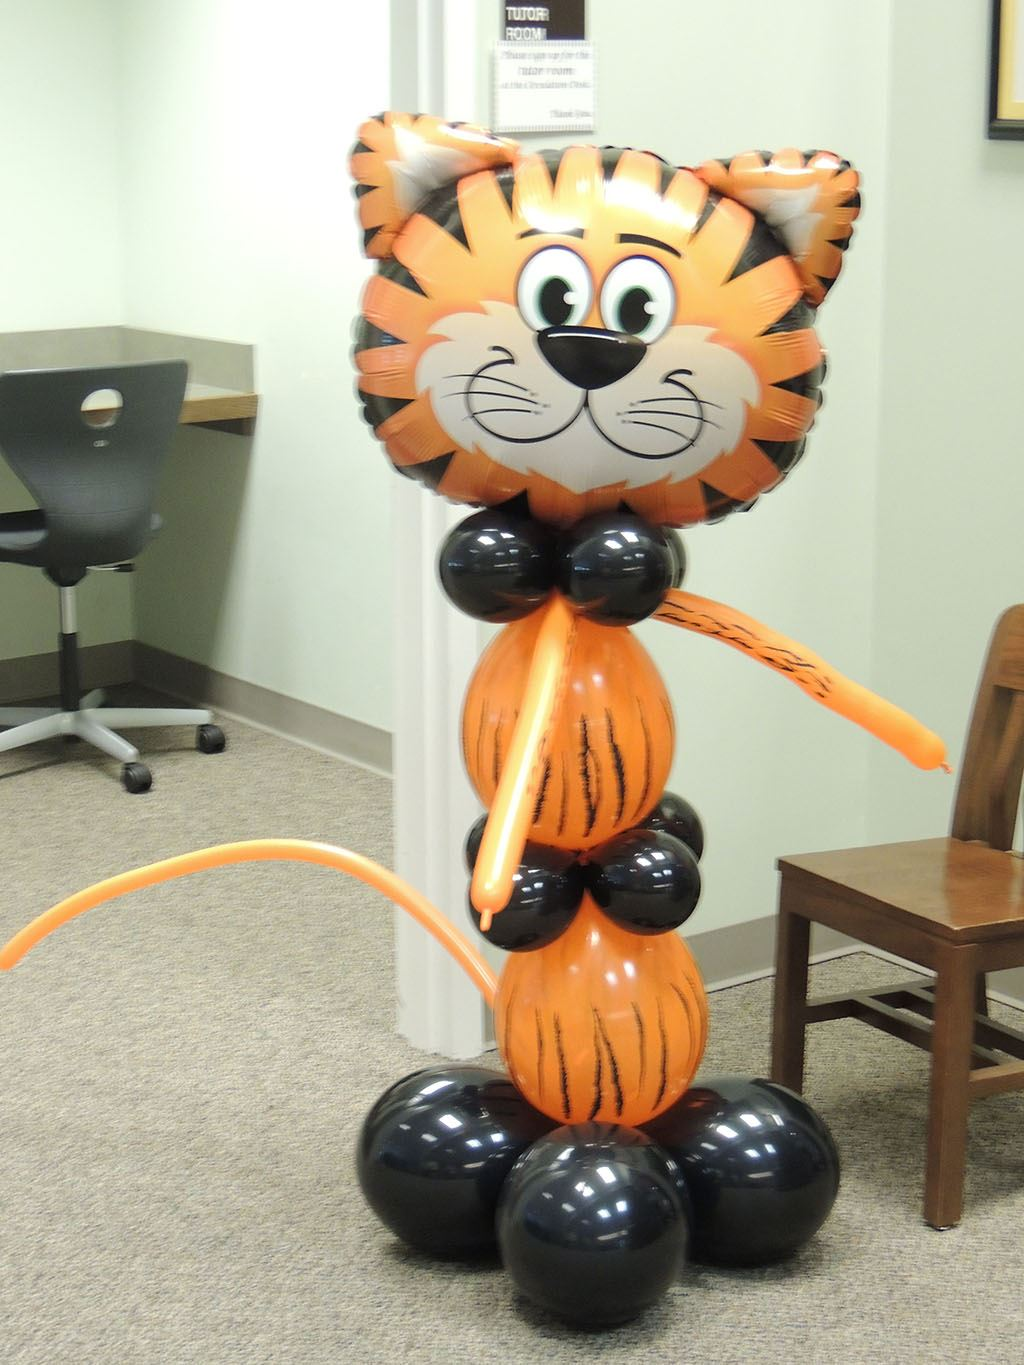 Balloon Tiger created by the Balloon Lady Donna Pruett